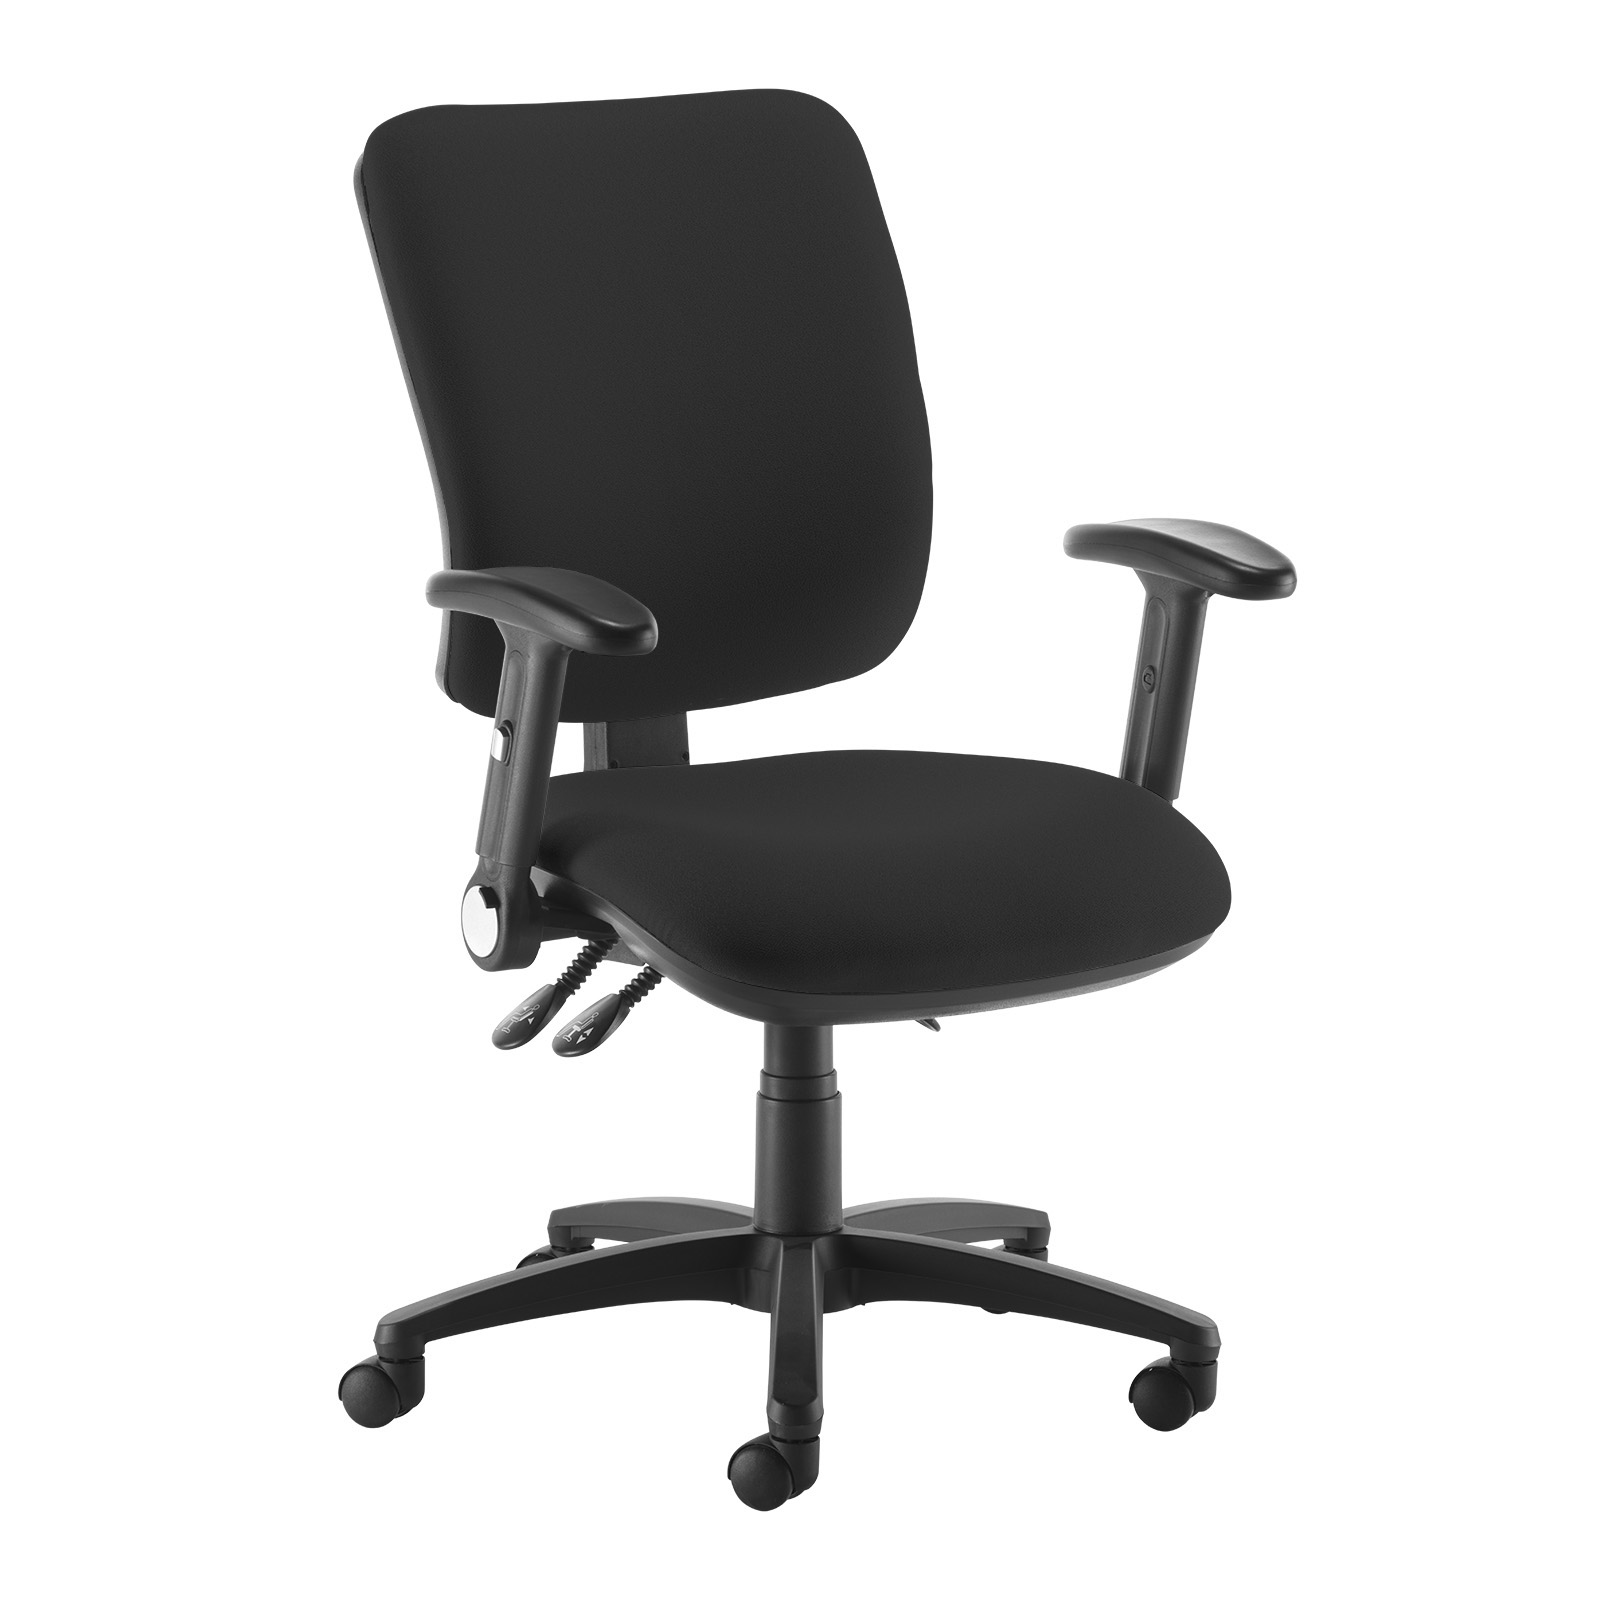 Desk Chairs Senza high back operator chair with folding arms - black